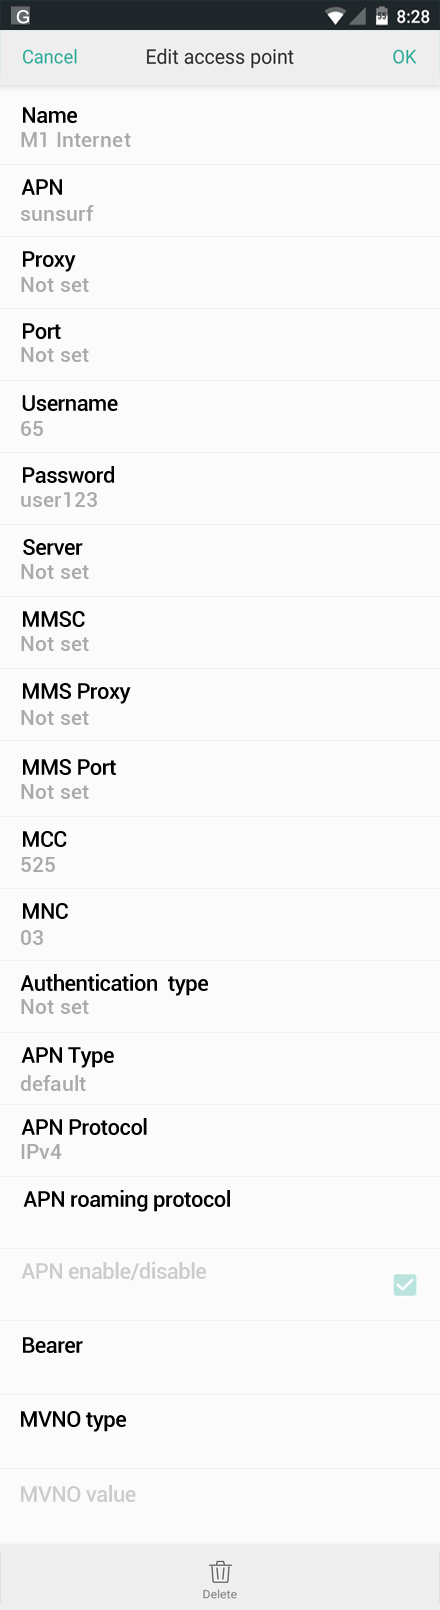 M1 Internet APN settings for Oppo screenshot